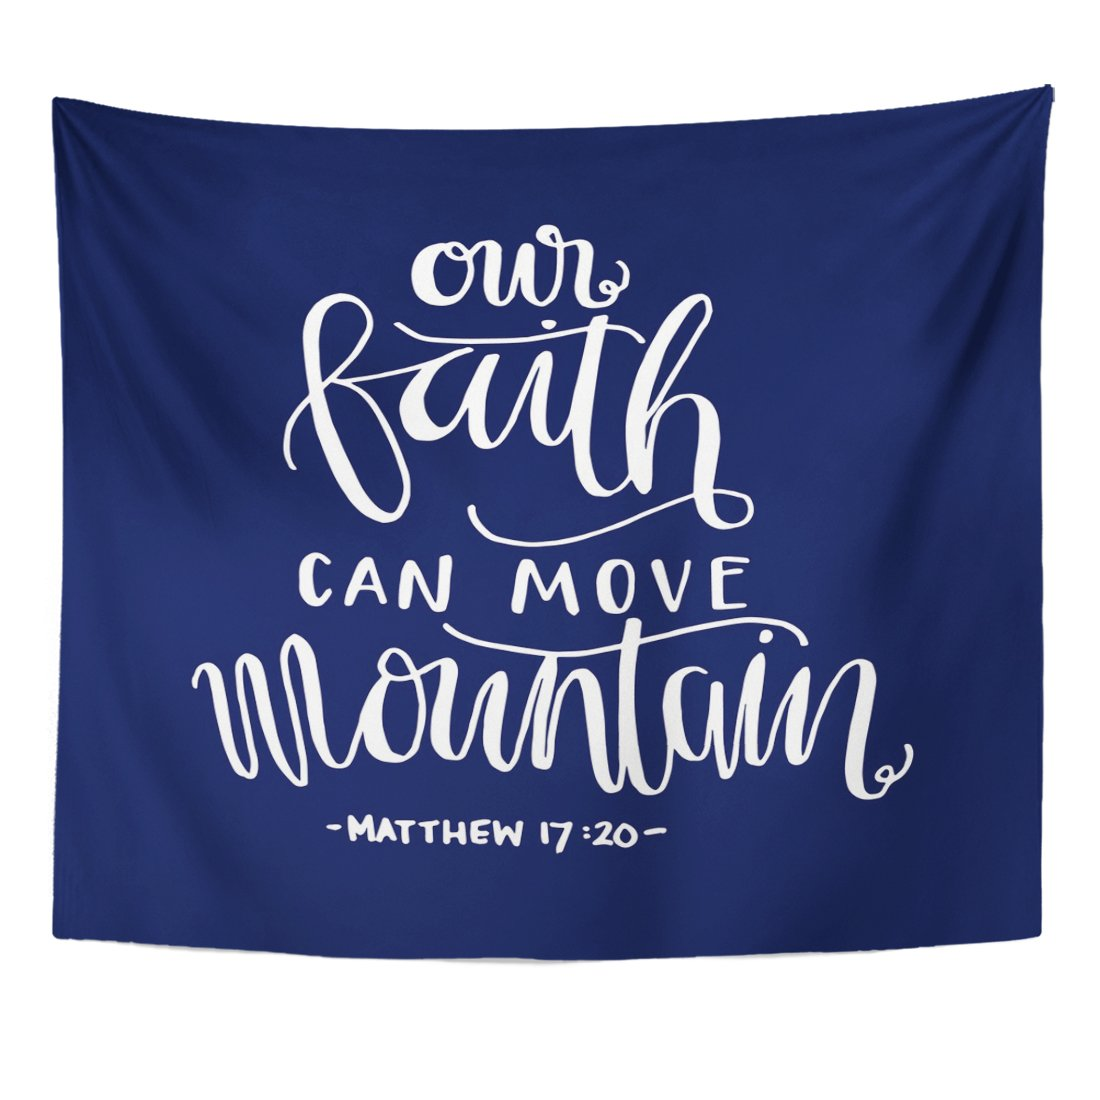 Breezat Tapestry Scripture Our Faith Can Move Mountains Bible Verse Hand Lettered Quote Modern Calligraphy Christian Home Decor Wall Hanging for Living Room Bedroom Dorm 50x60 Inches